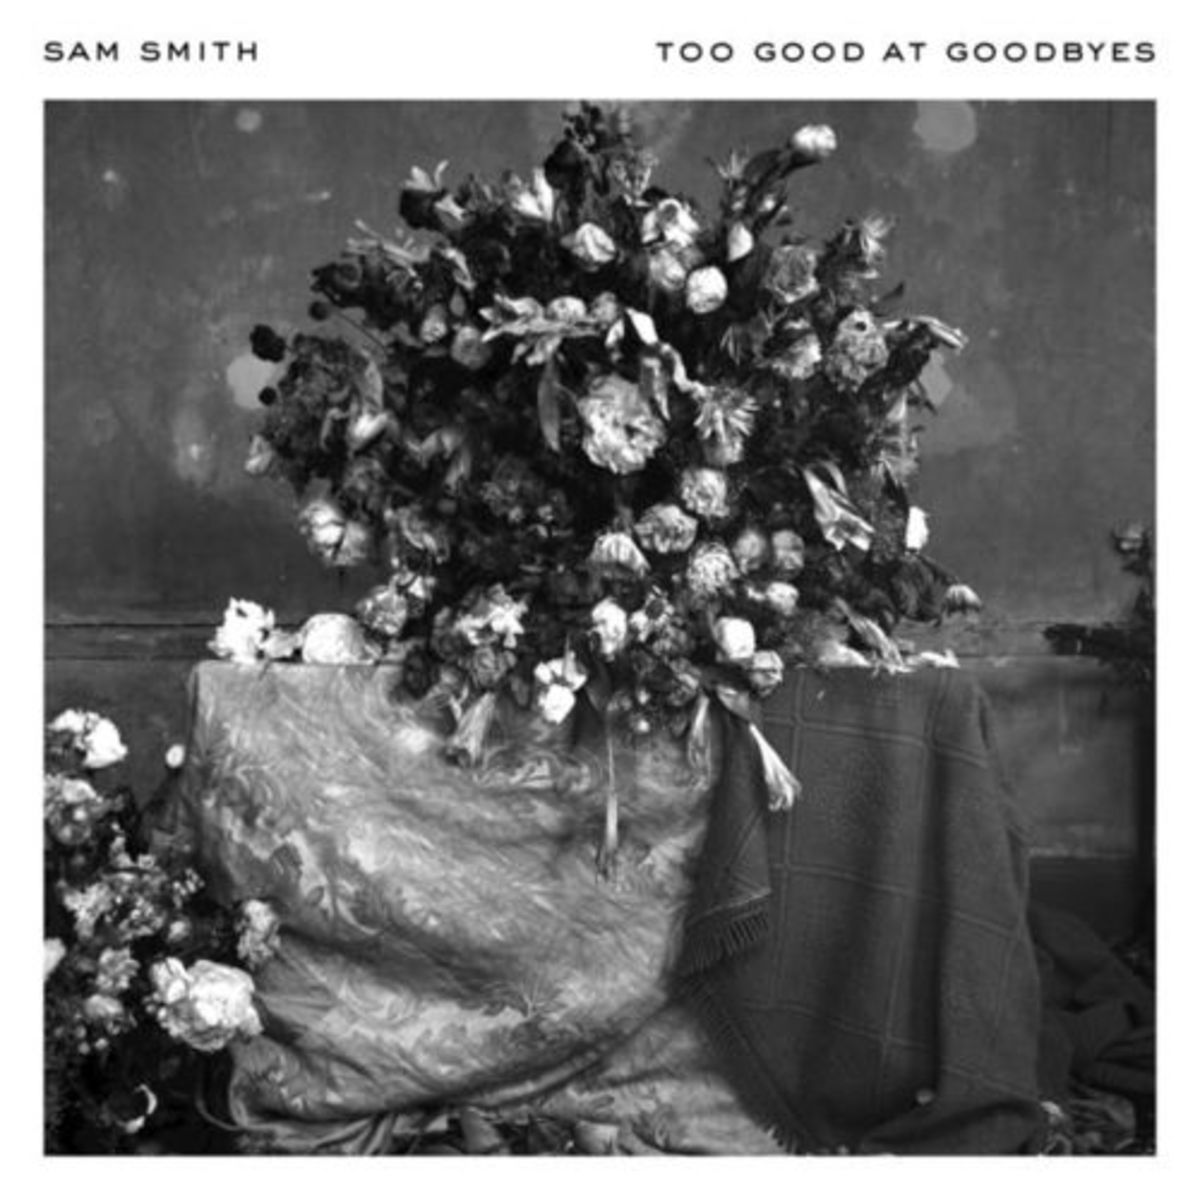 sam-smith-too-good-at-goodbyes.jpg